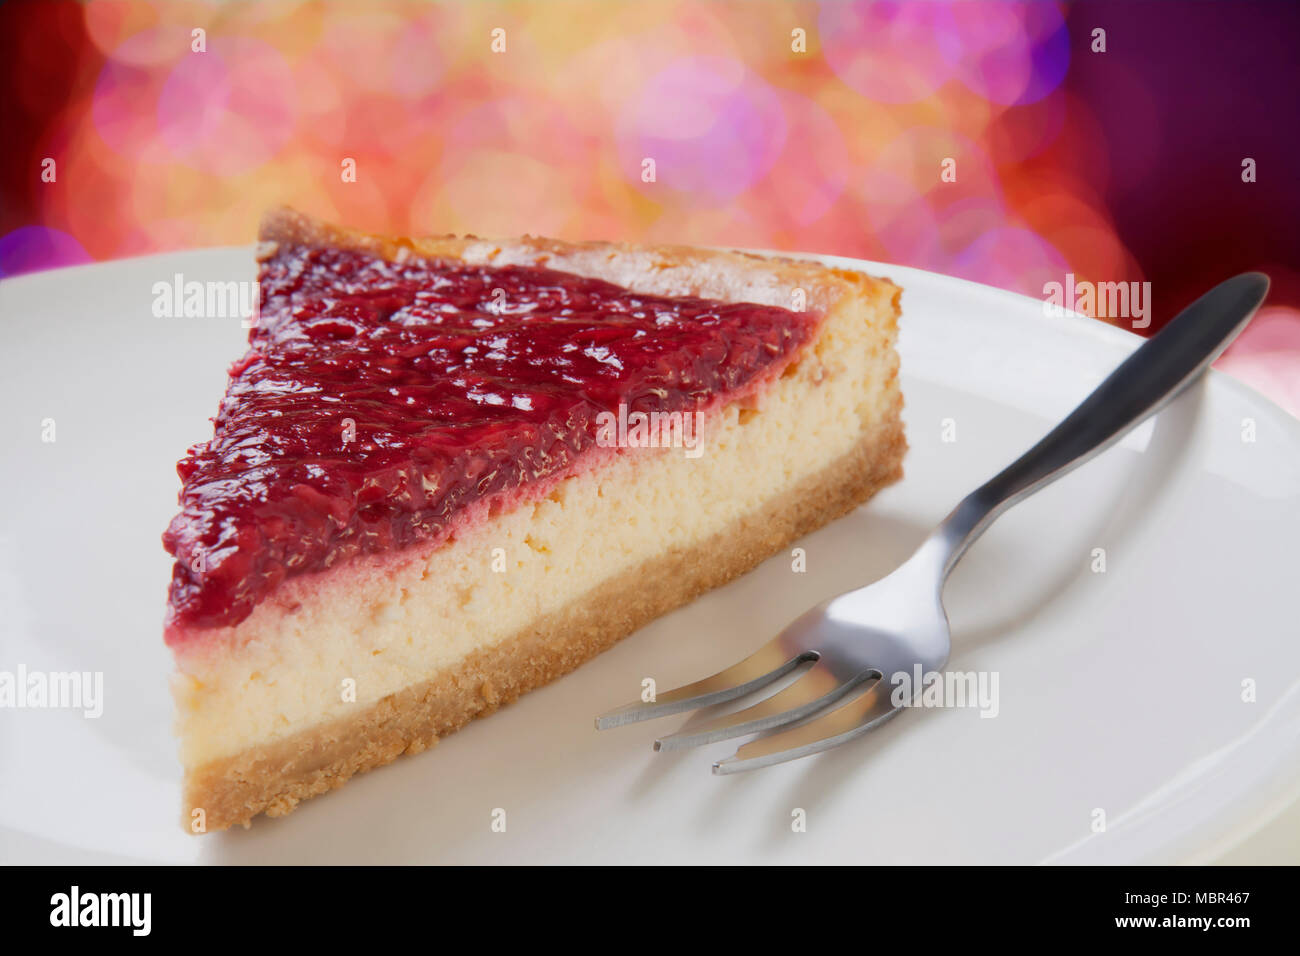 Slice of Raspberry Cheesecake on a white plate; Close up - Stock Image